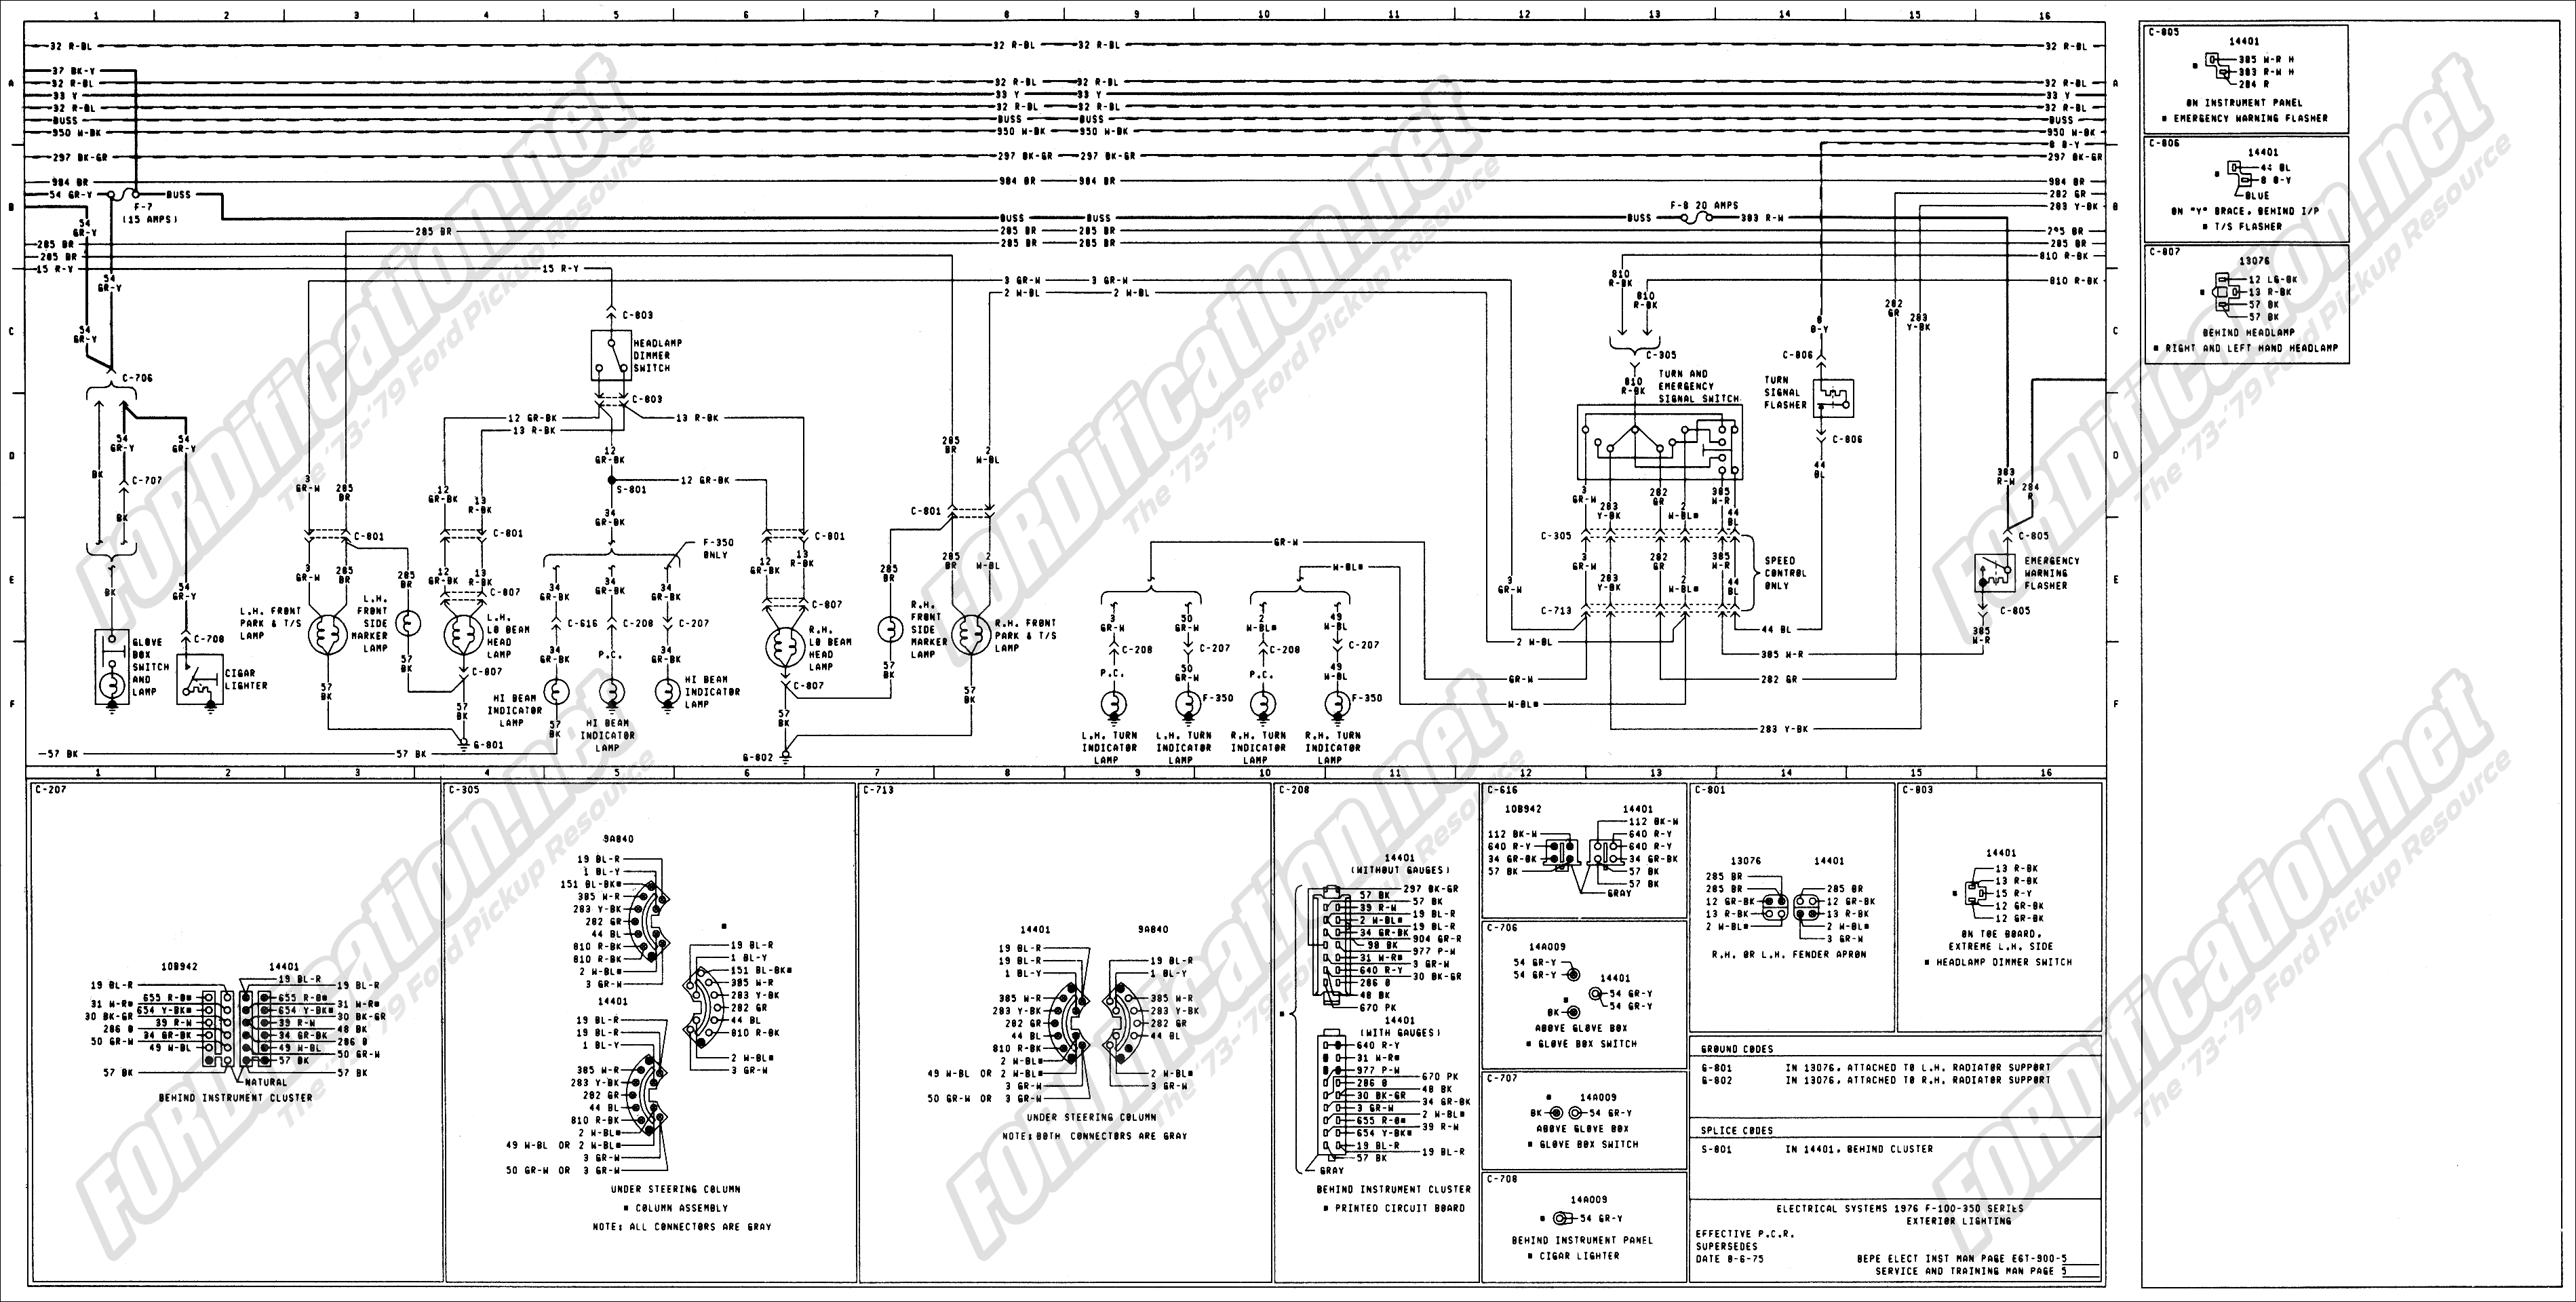 wiring_76master_5of9 1983 ford f100 wiring diagram wiring diagram simonand 1979 ford f100 fuse box diagram at couponss.co